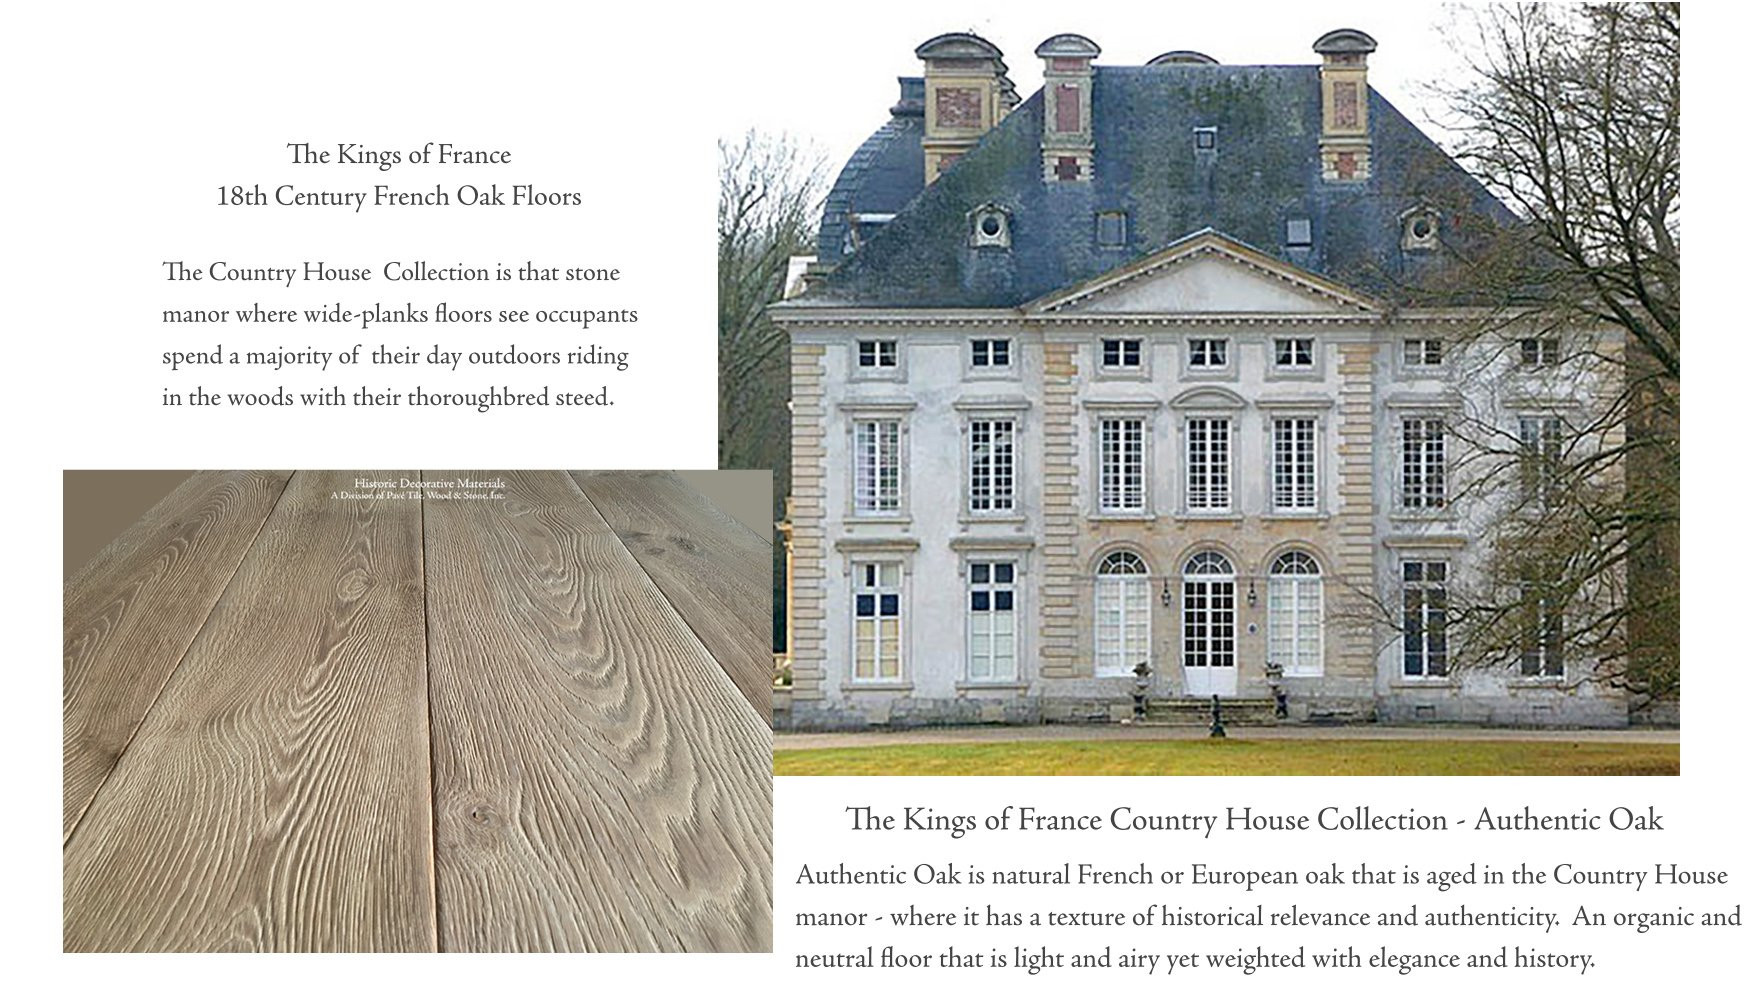 wide plank hardwood flooring for sale of antique and aged french oak flooring and vintage french oak flooring for the country house collection kings of france 18th century french oak flooring authentic oak